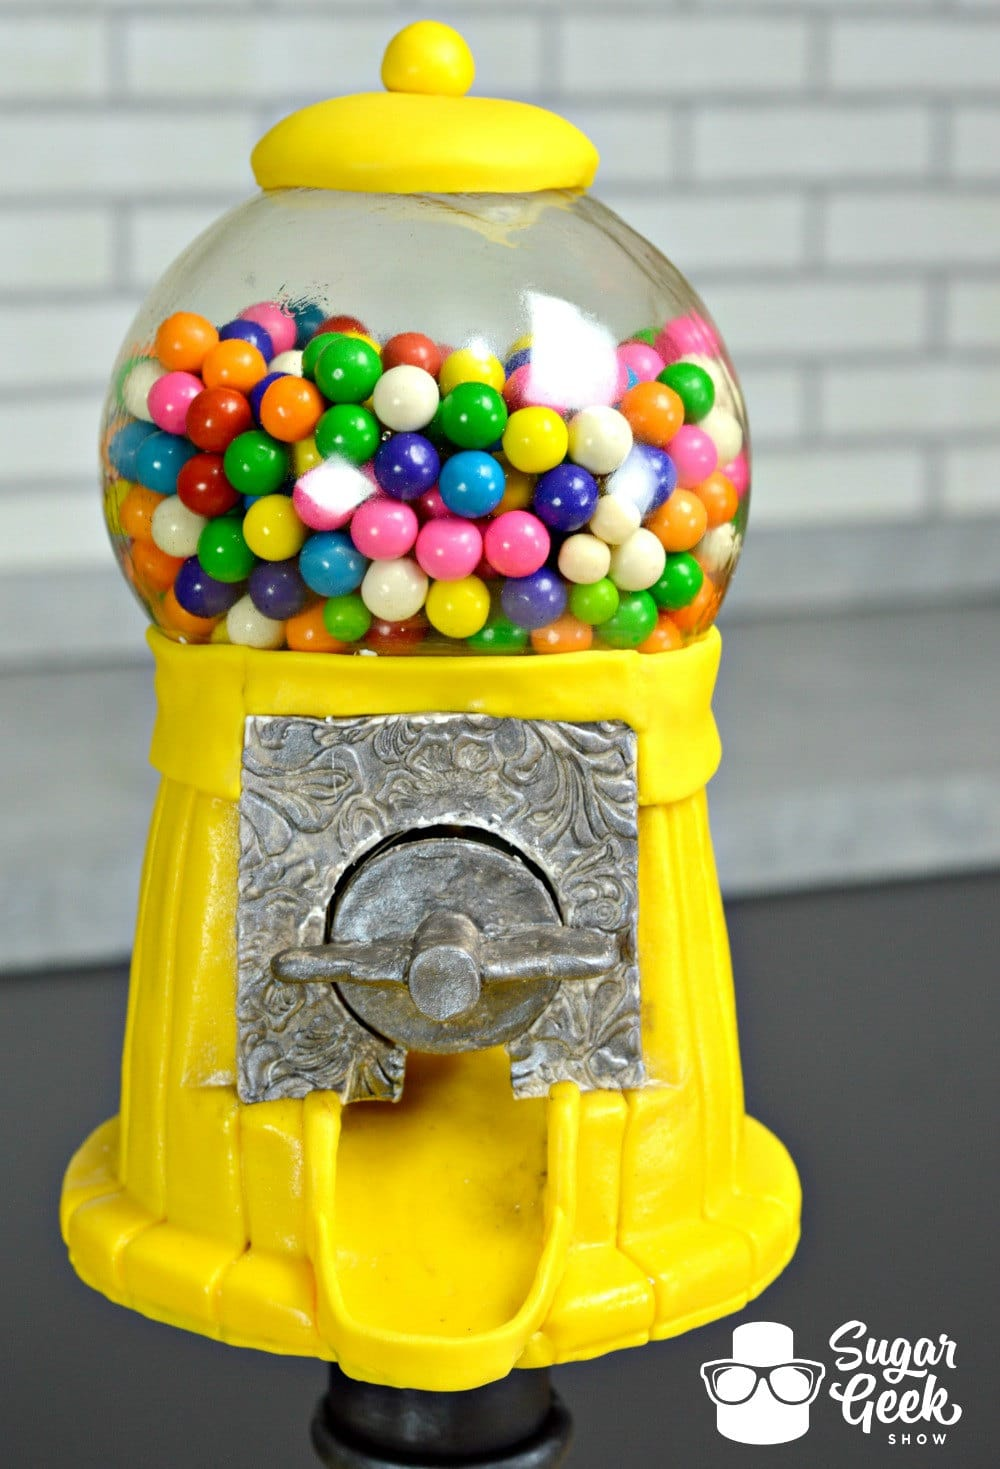 Working Gumball Machine Cake Edible Glass Globe